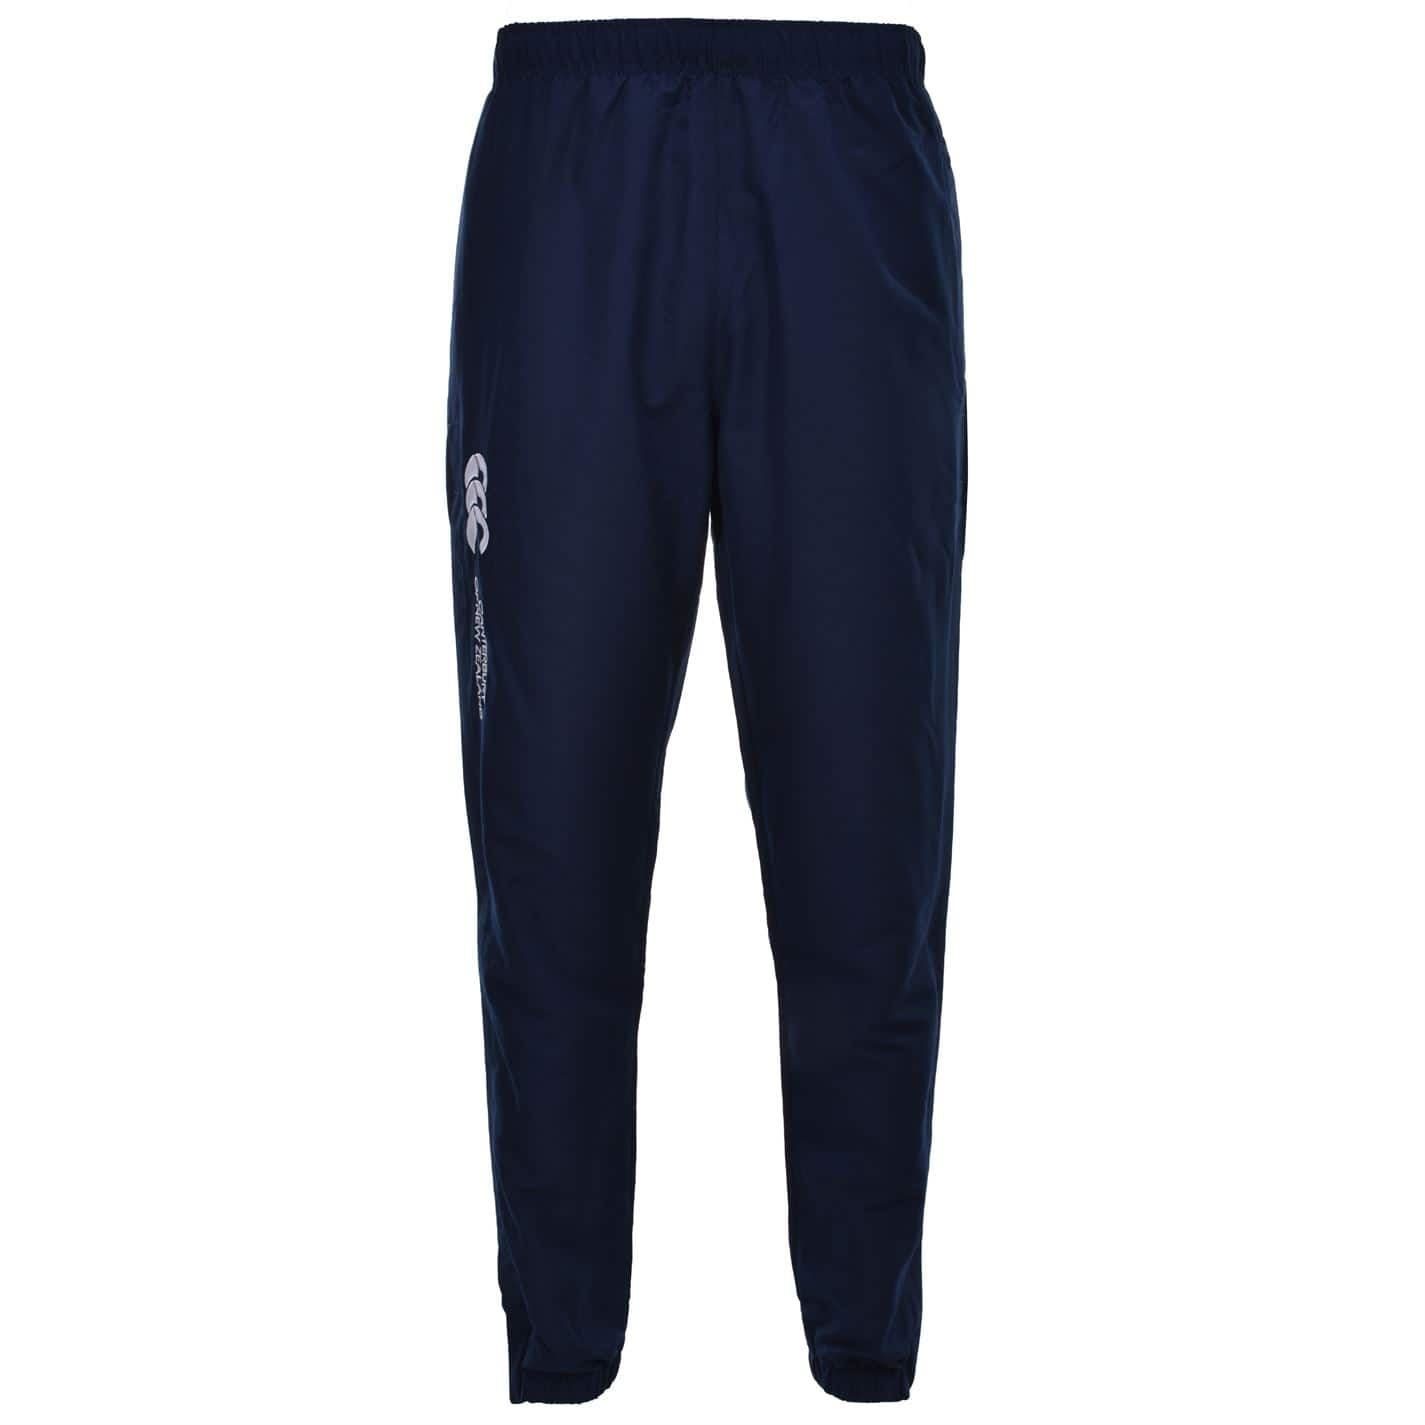 Canterbury-Cuffed-Stadium-Tracksuit-Pants-Mens-Rugby-Sweatpants-Fan-Bottoms thumbnail 11